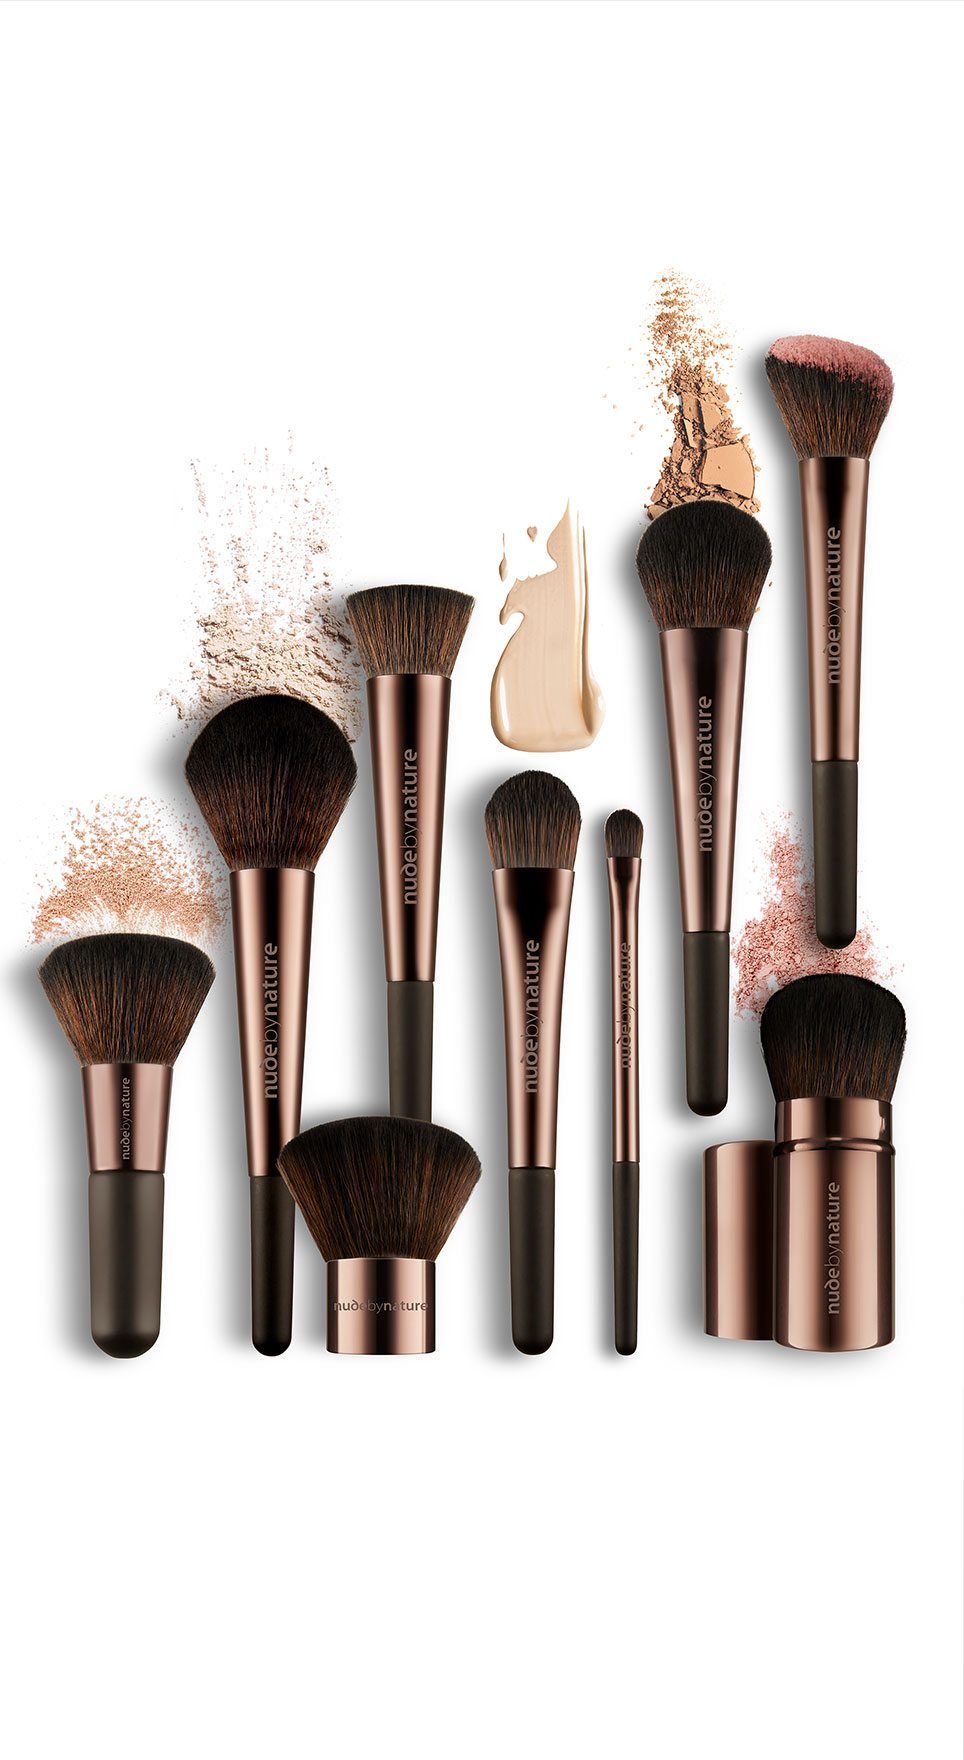 Makeup Brushes And What They Are Used For: Top 5 Makeup Brushes